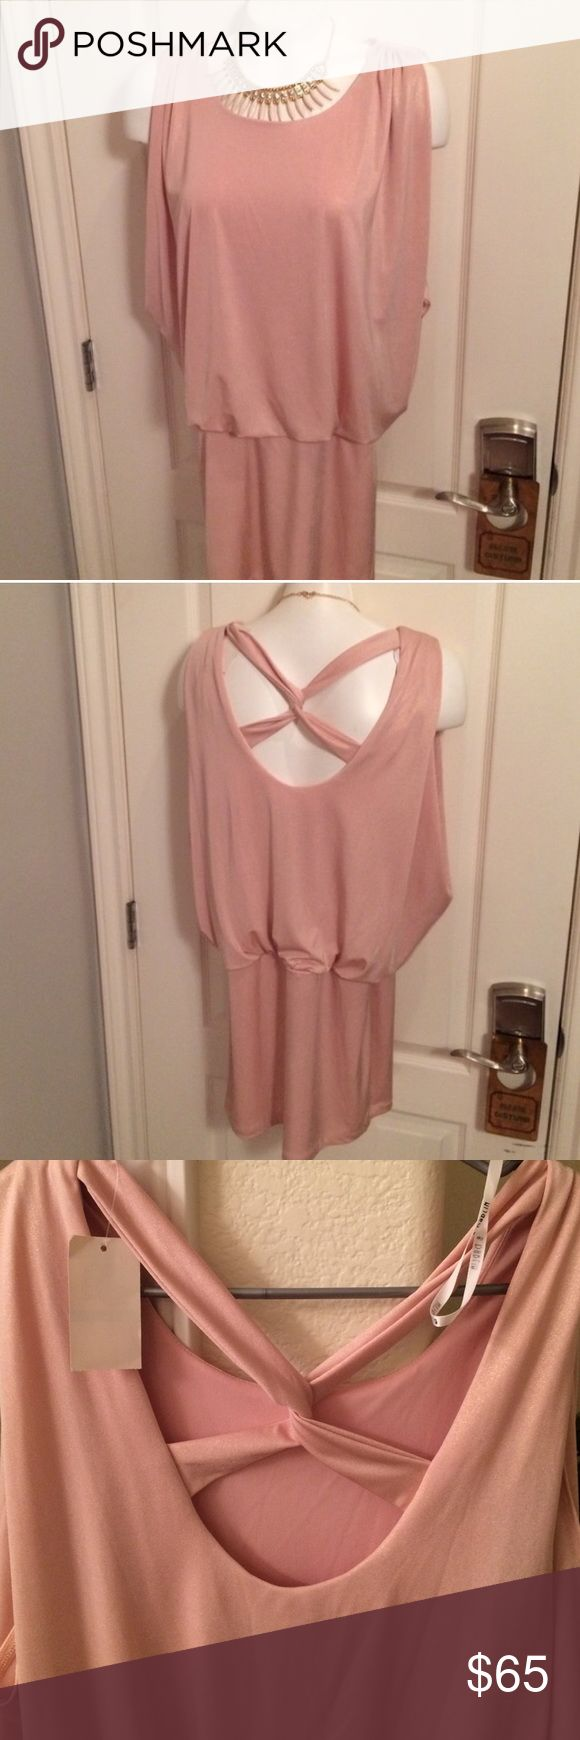 👛 Flirty Rose Gold Dress 👛 Fully lined mini dress, flirty and playful with criss cross back, comfortable fit made of Polyester & Spandex 🎀 Great Fit for US 8/10 B Darlin Dresses Mini